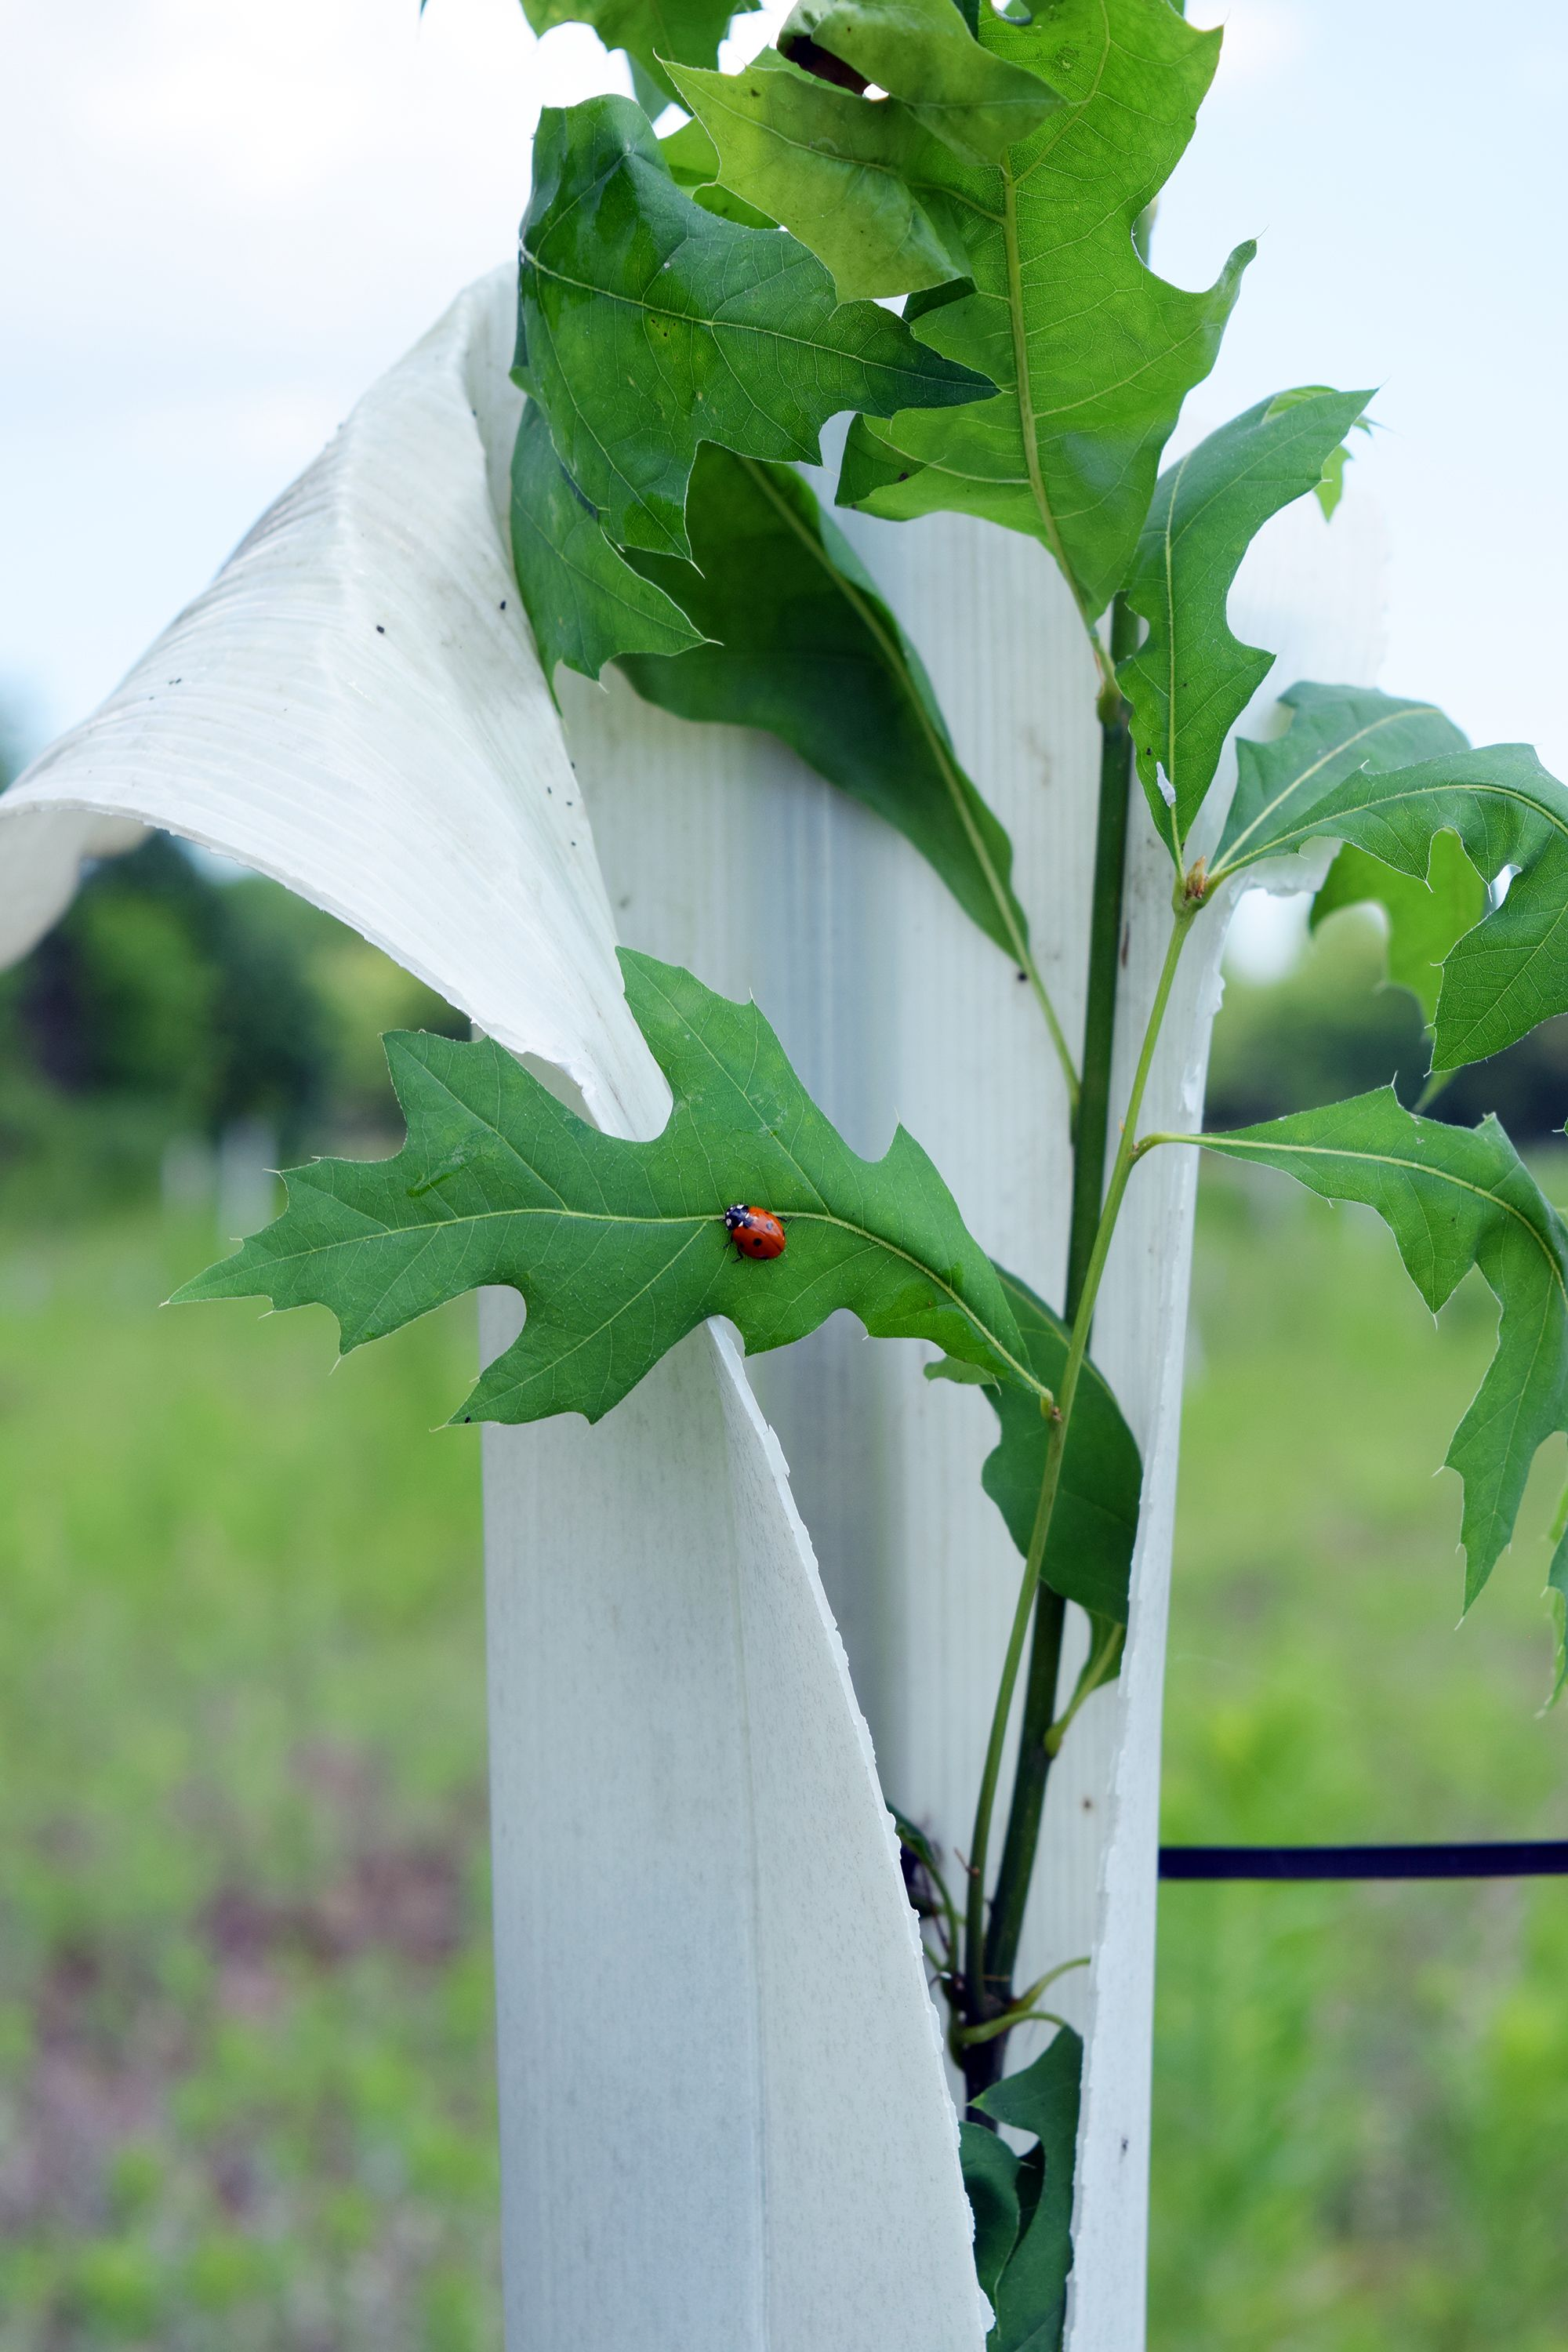 An oak sapling grows through the top of a tall plastic tube meant to reduce browsing by deer. A red ladybug sits on one of the leaves.